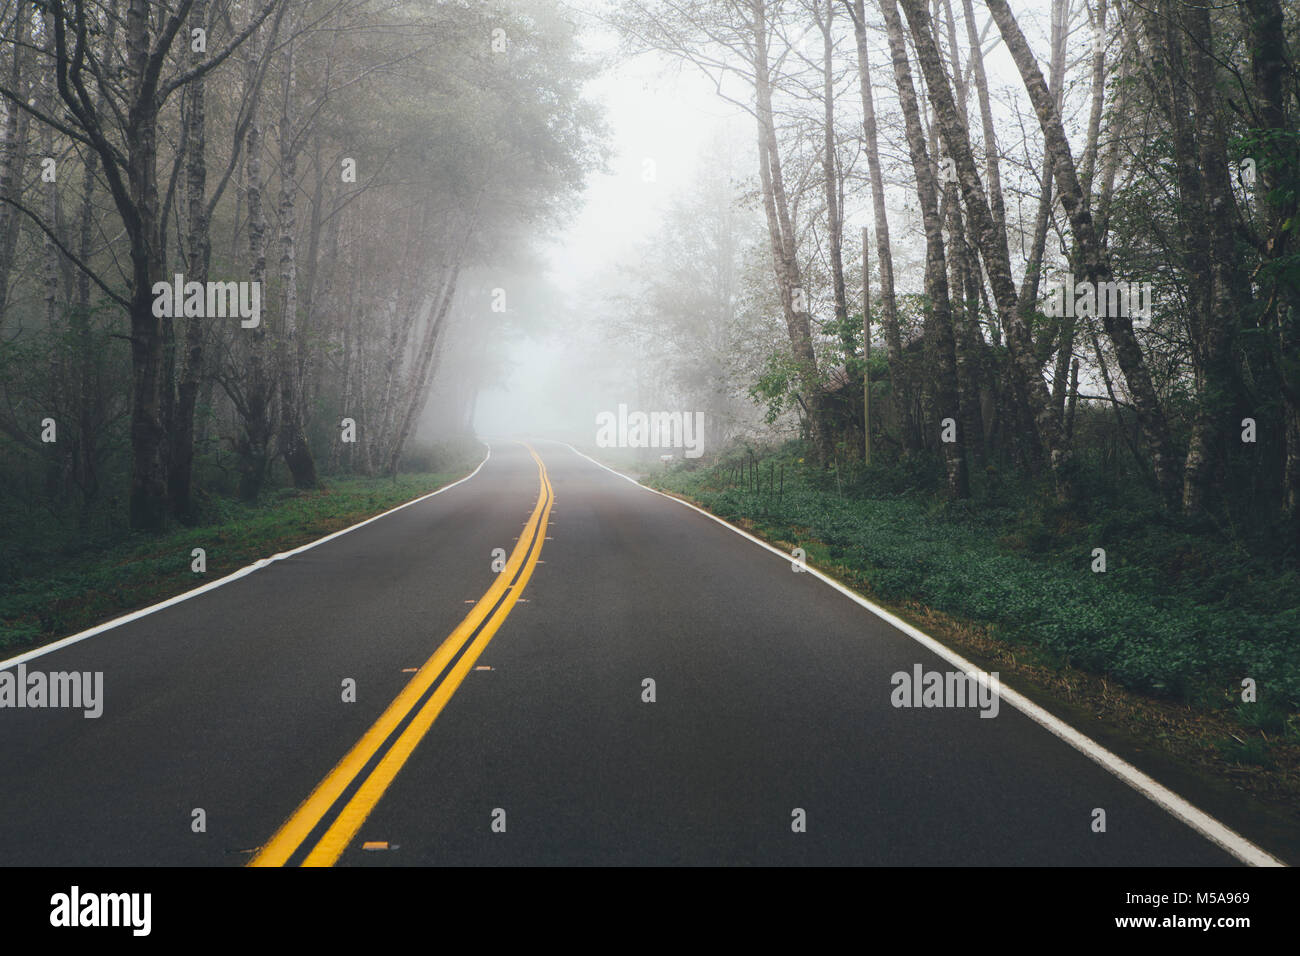 Rural highway through a forest of alder trees into the distance, mist hanging in the trees. - Stock Image